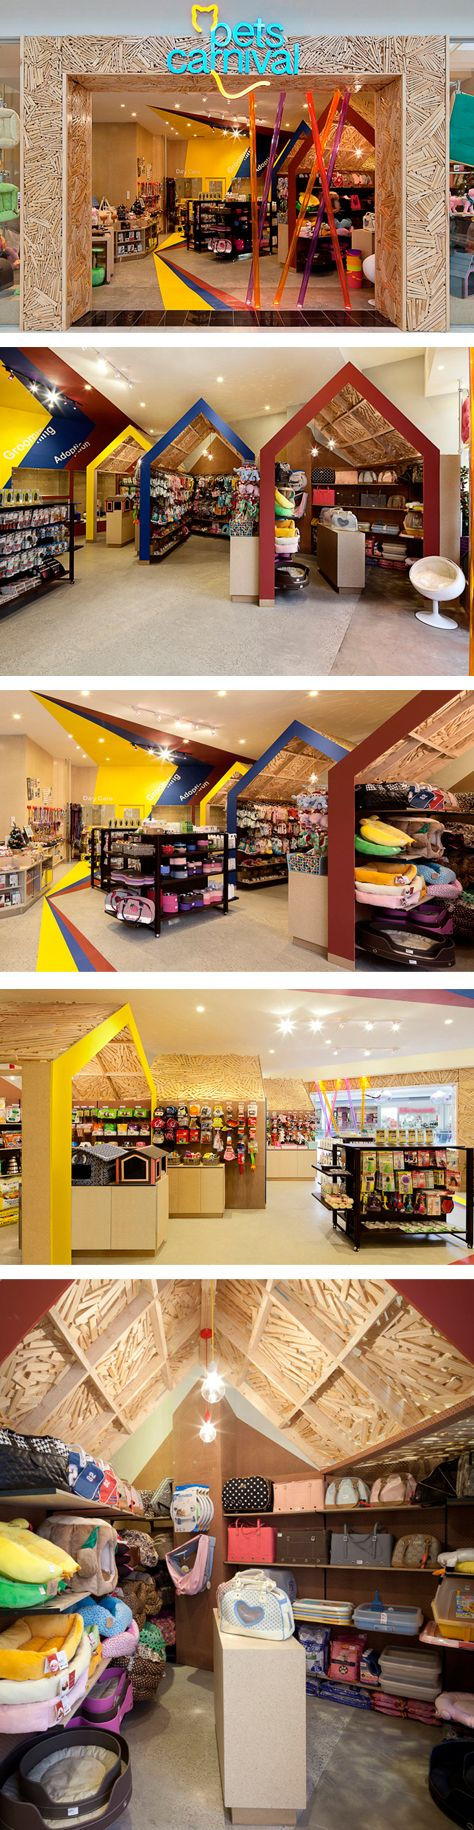 Pets Carnival store by rptecture architects, Melbourne – Australia.